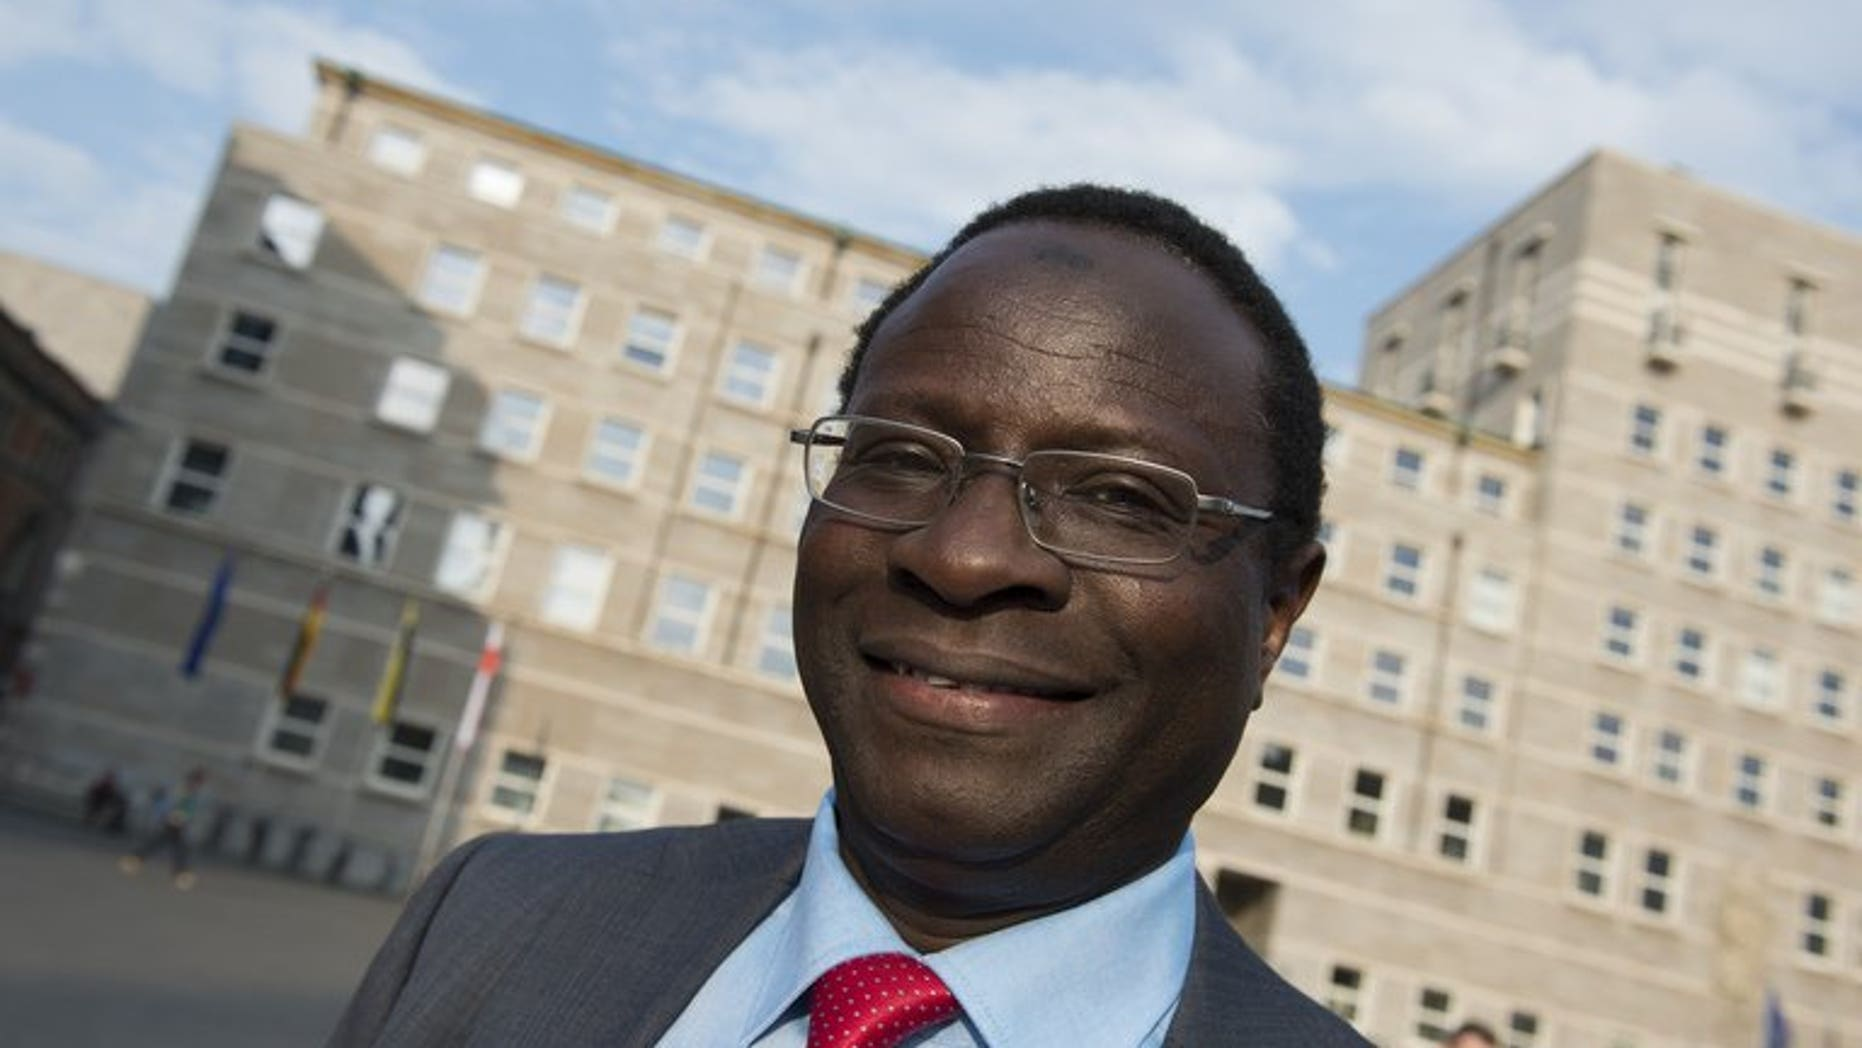 Senegalese-born lawmaker Karamba Diaby in Halle, eastern Germany, on May 6, 2013. Germany's first two lawmakers of African origin cheered their victory as trailblazers after winning in weekend elections.